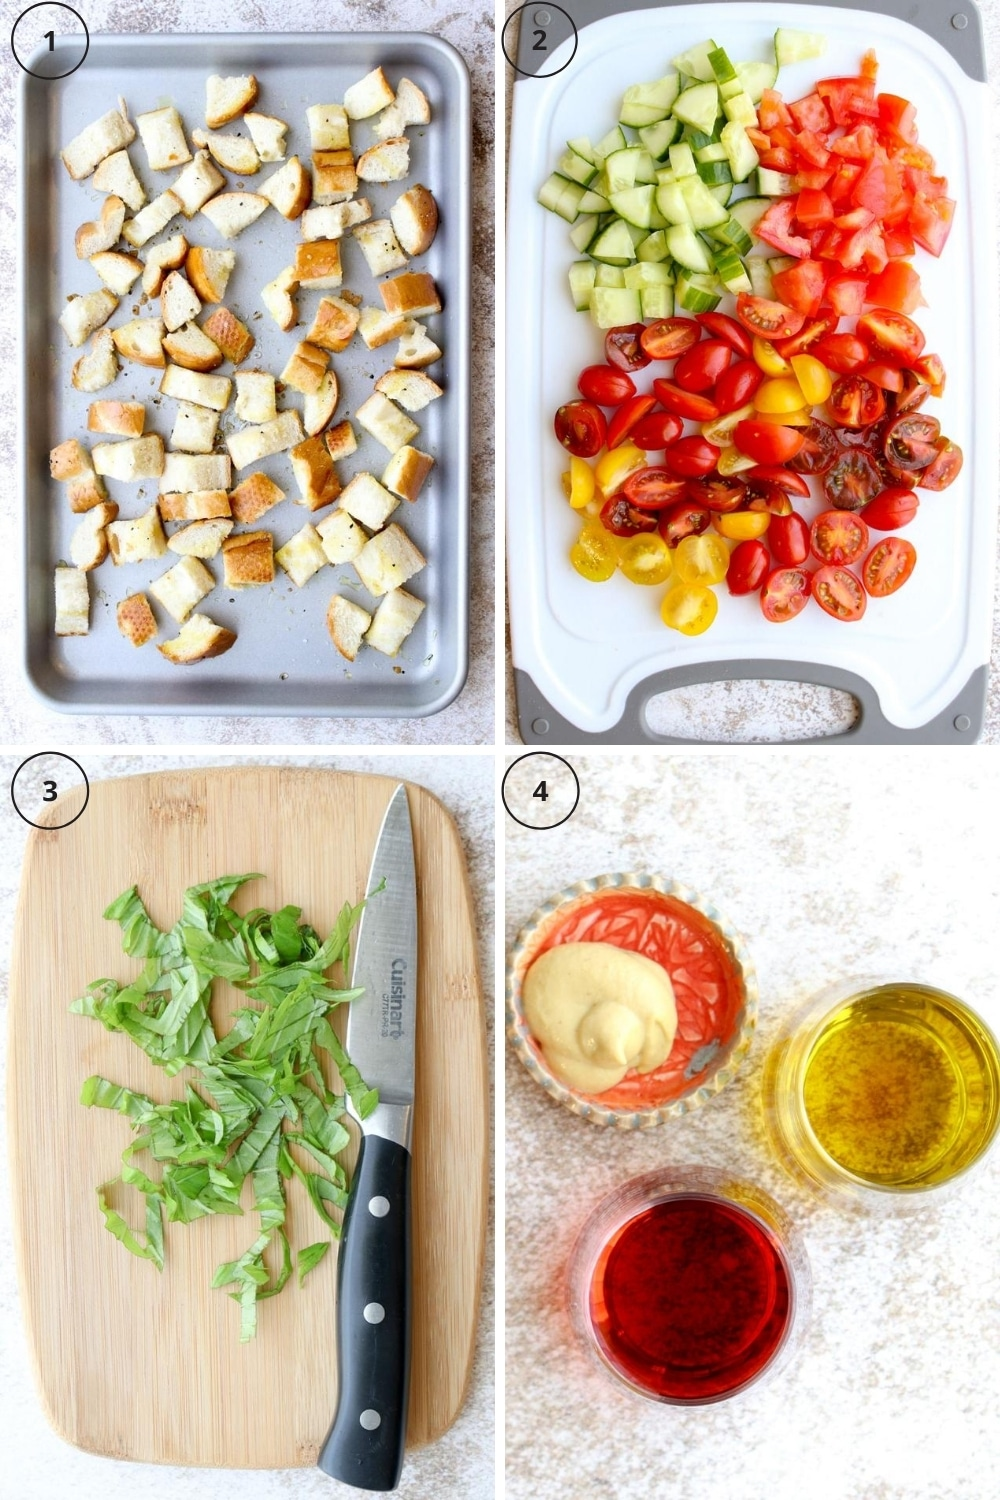 photo collage showing steps to make the bread salad